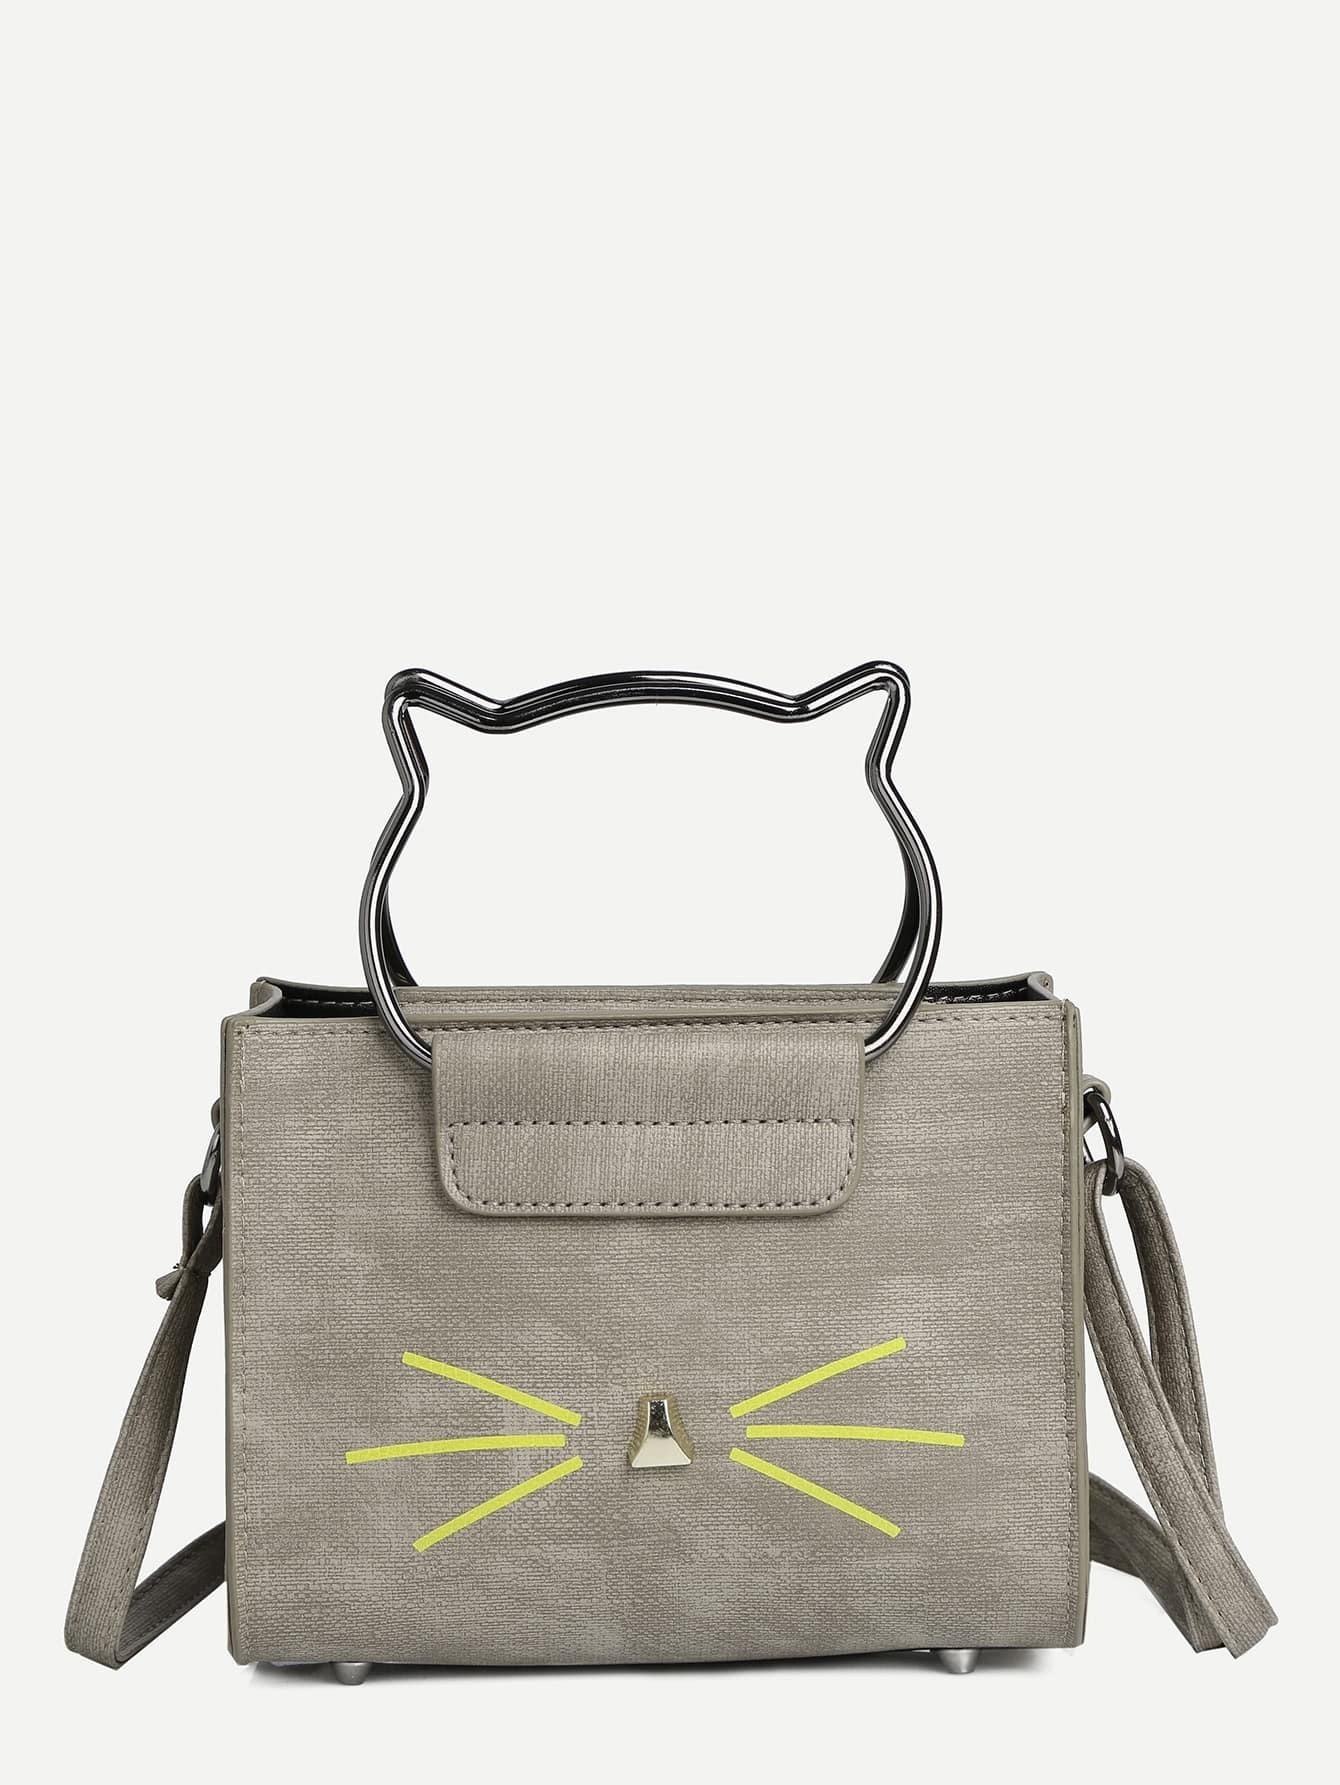 Cat Beard Print Crossbody Bag мужской ремень 29131